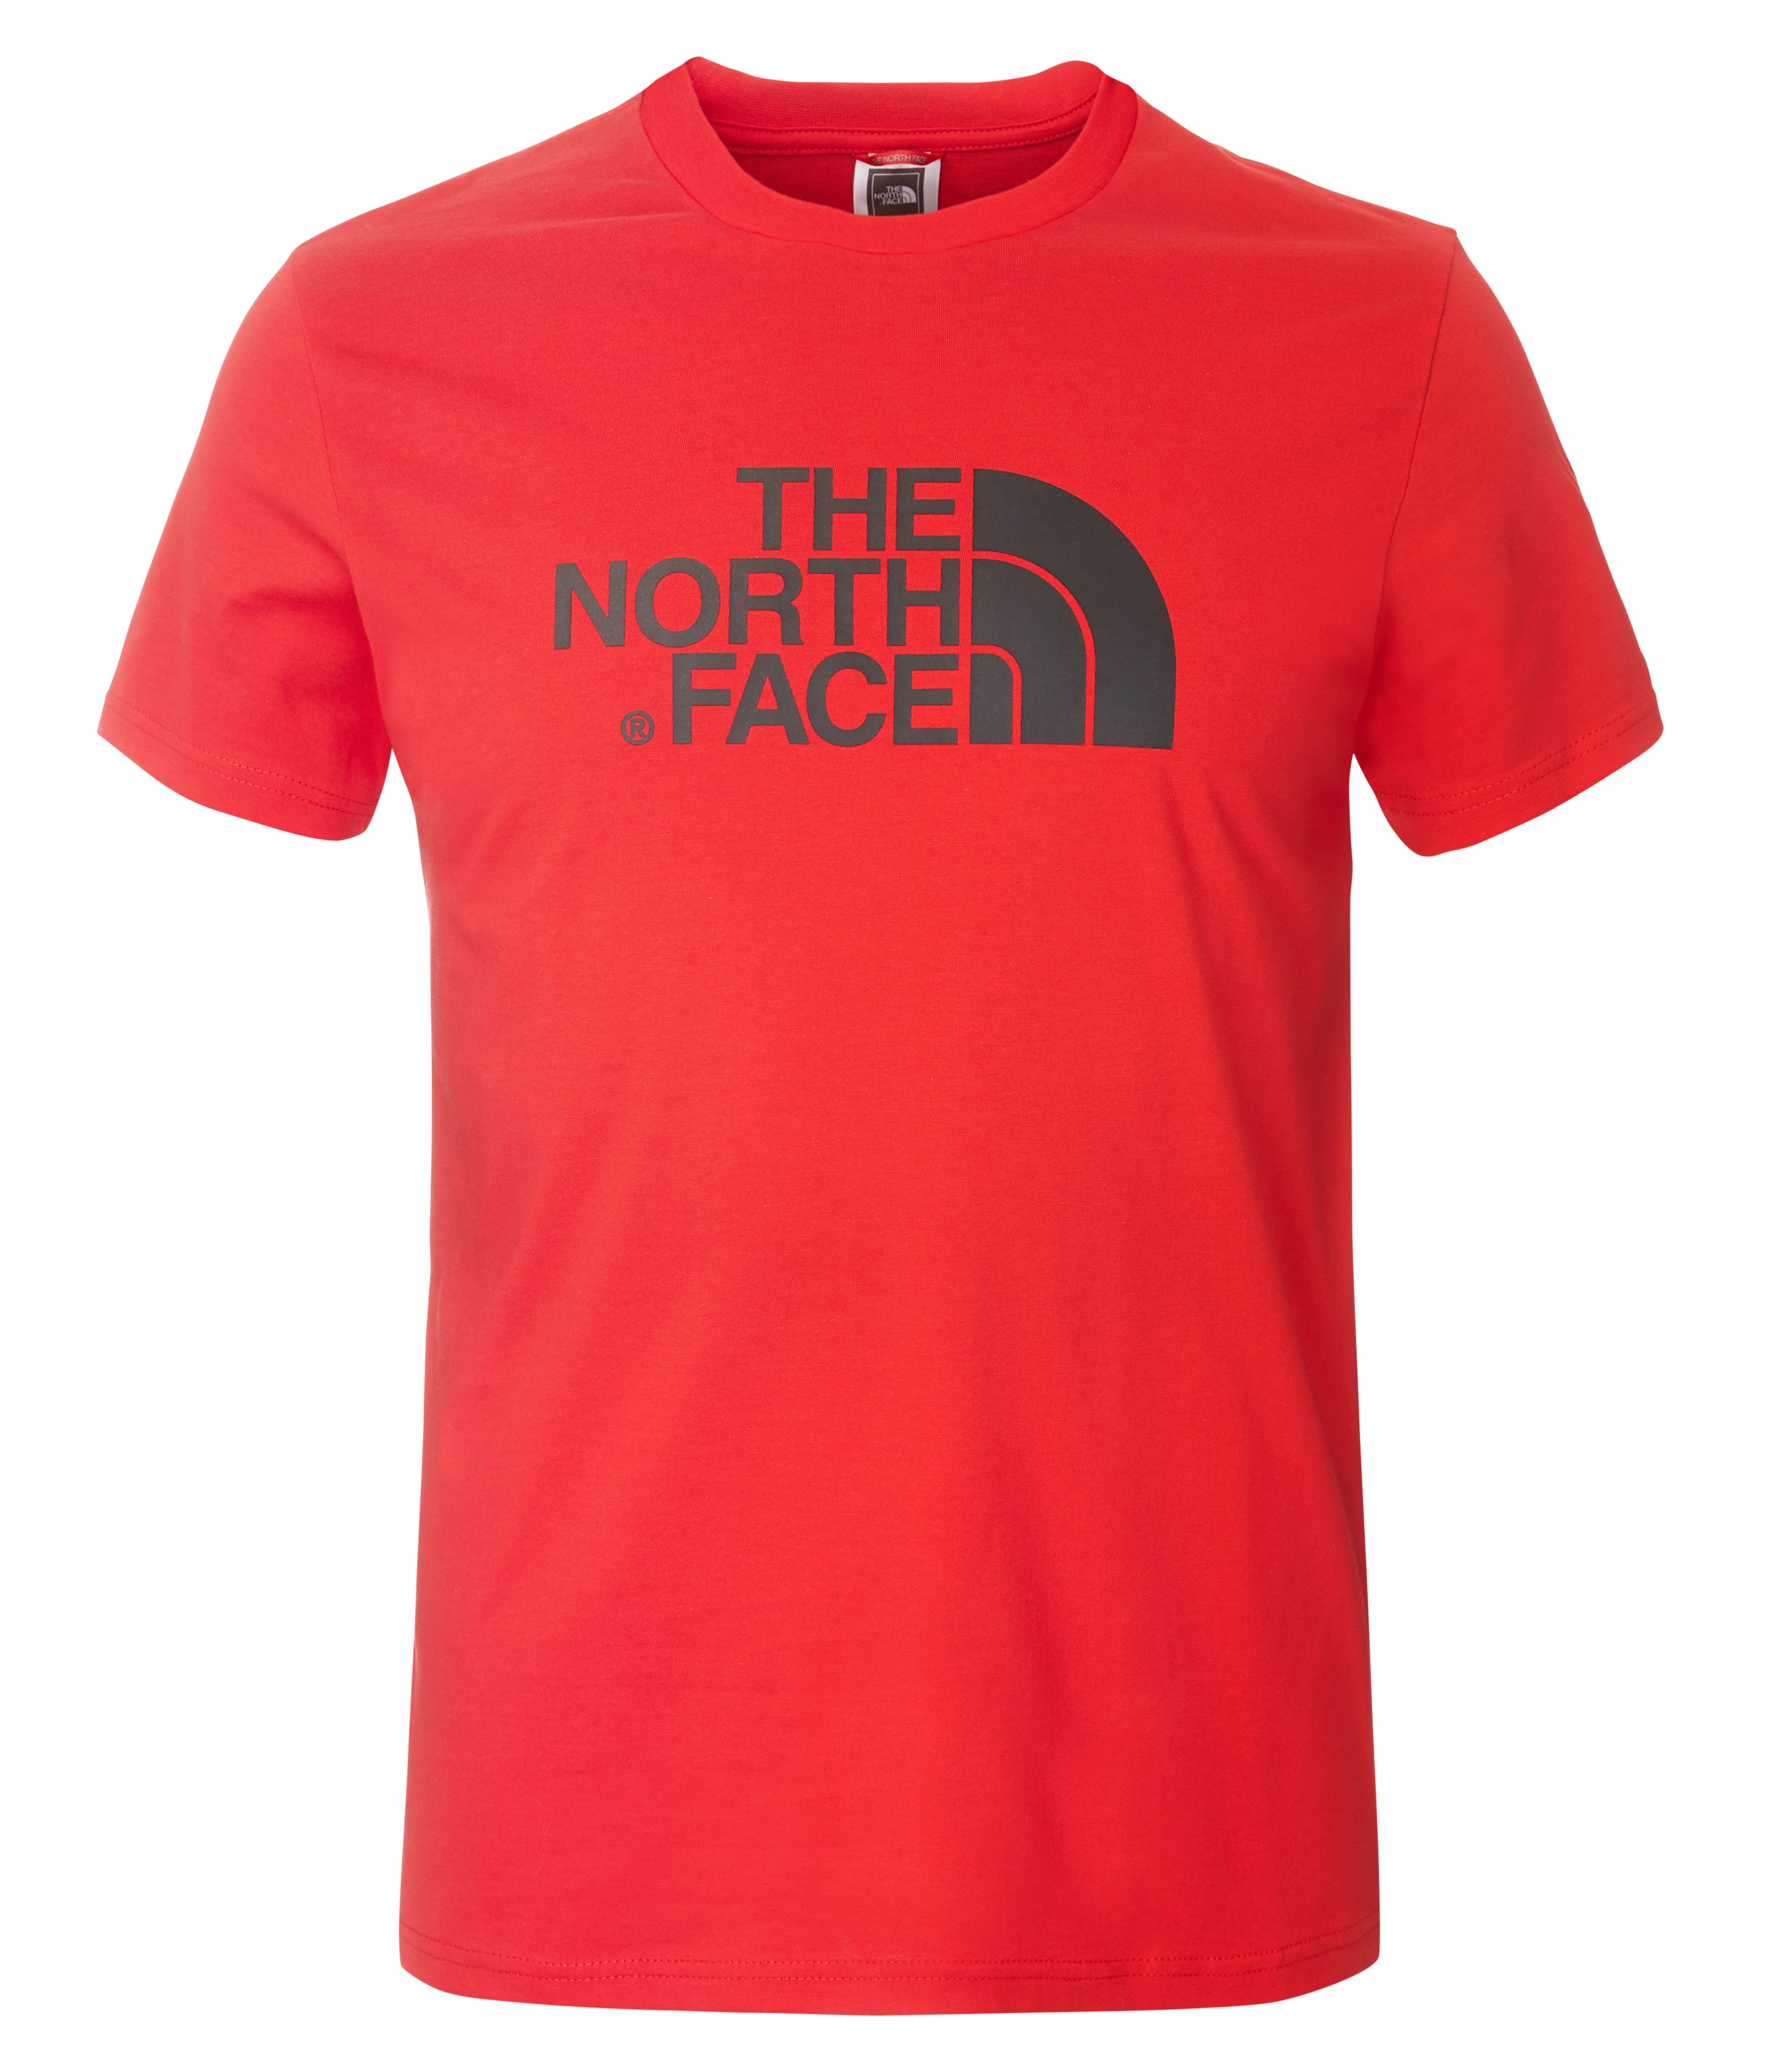 THE NORTH FACE m Easy Tee, Red